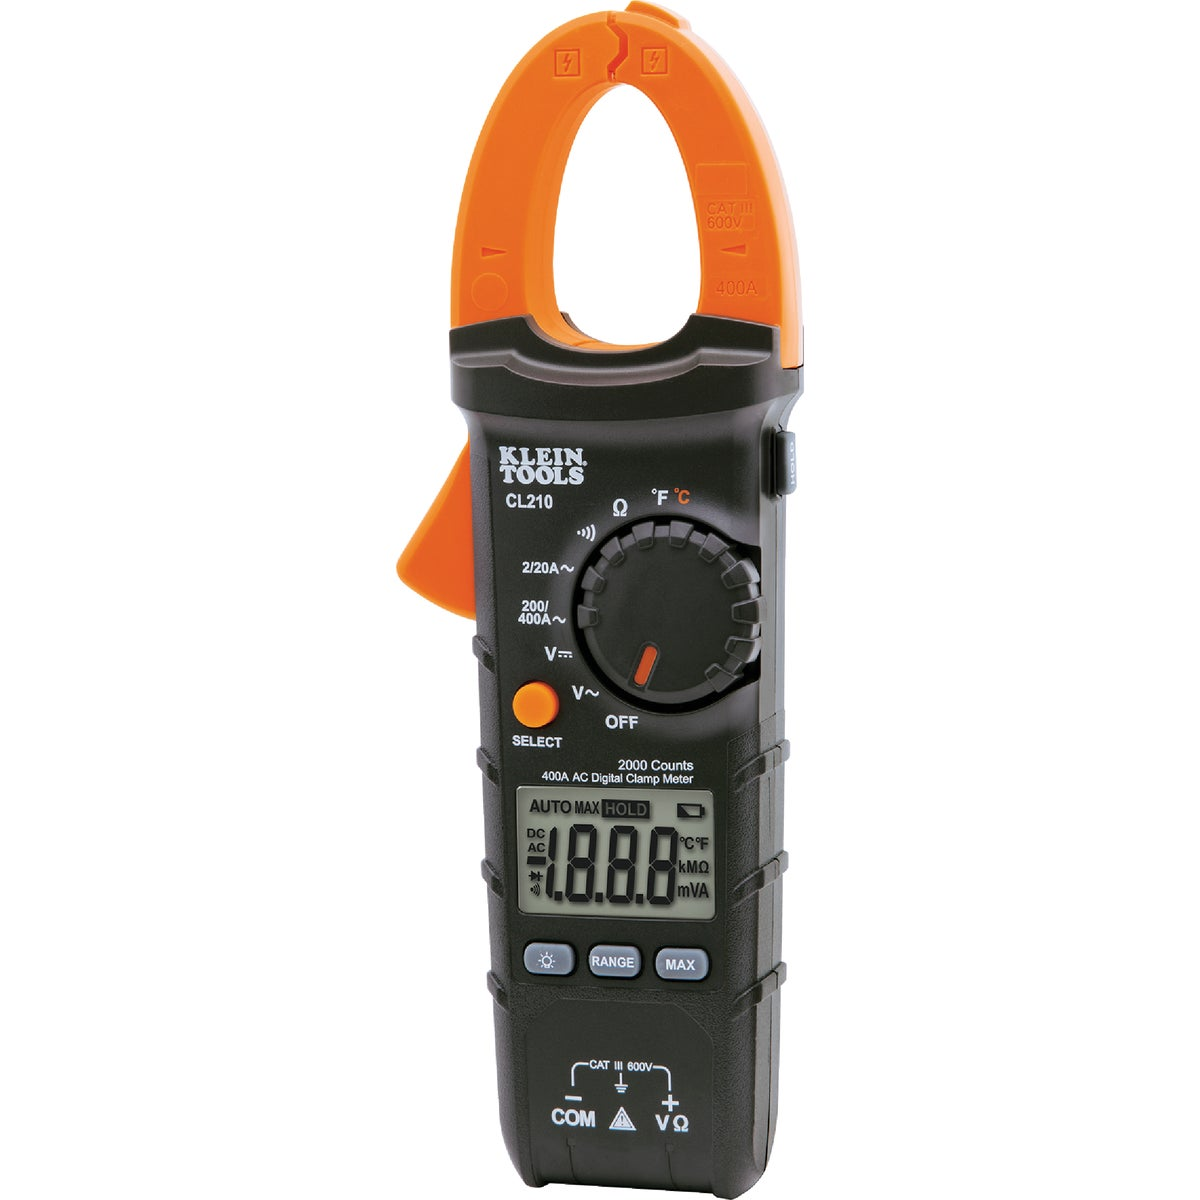 600A AC CLAMP METER - CL100 by Klein Tools Inc